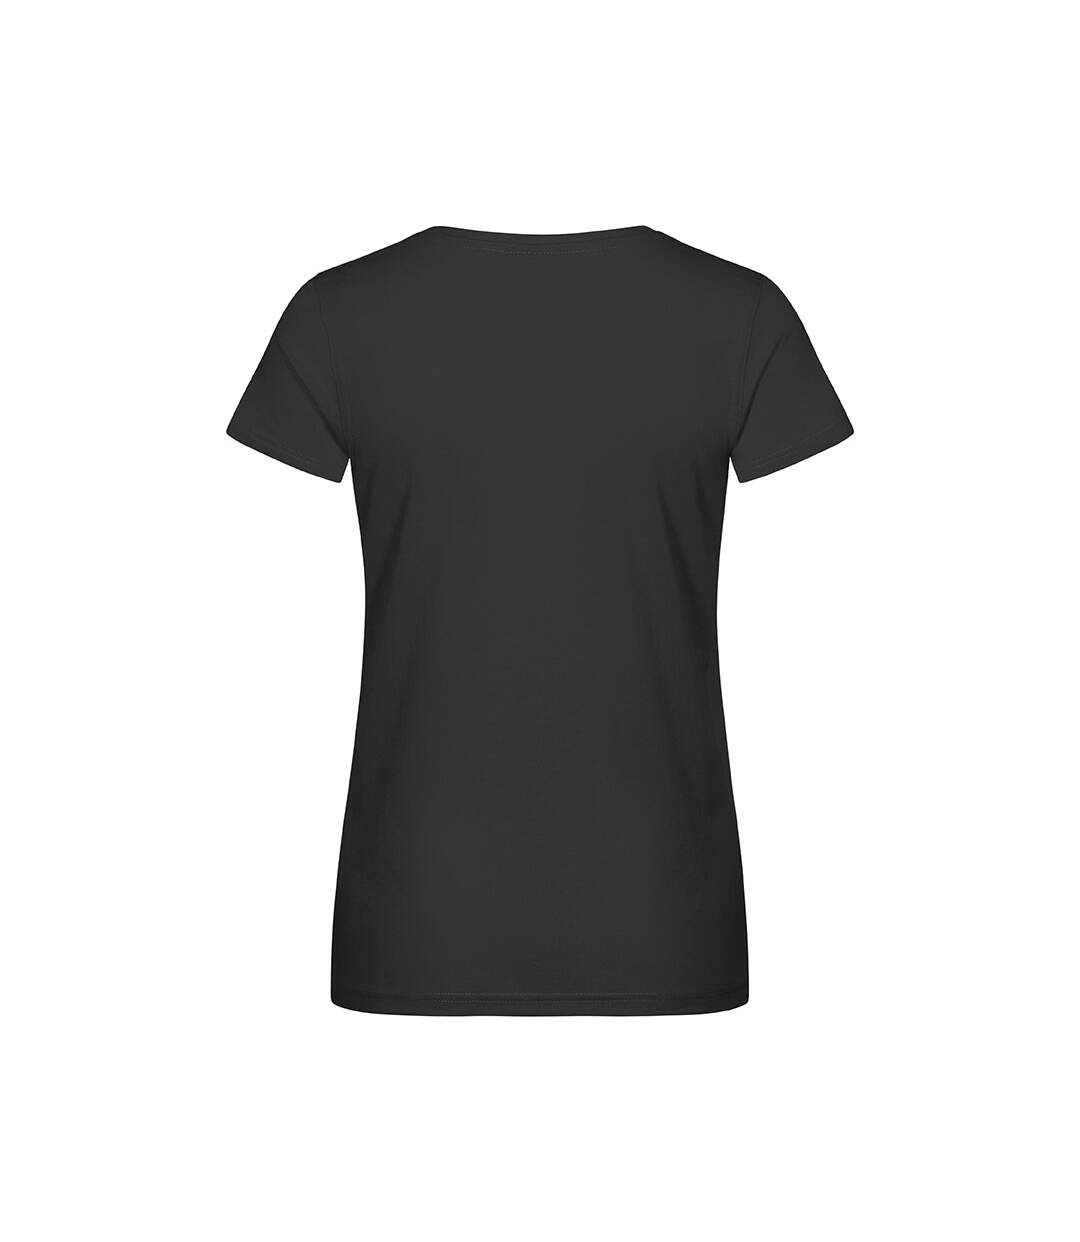 EXCD T-shirt grandes tailles Femmes